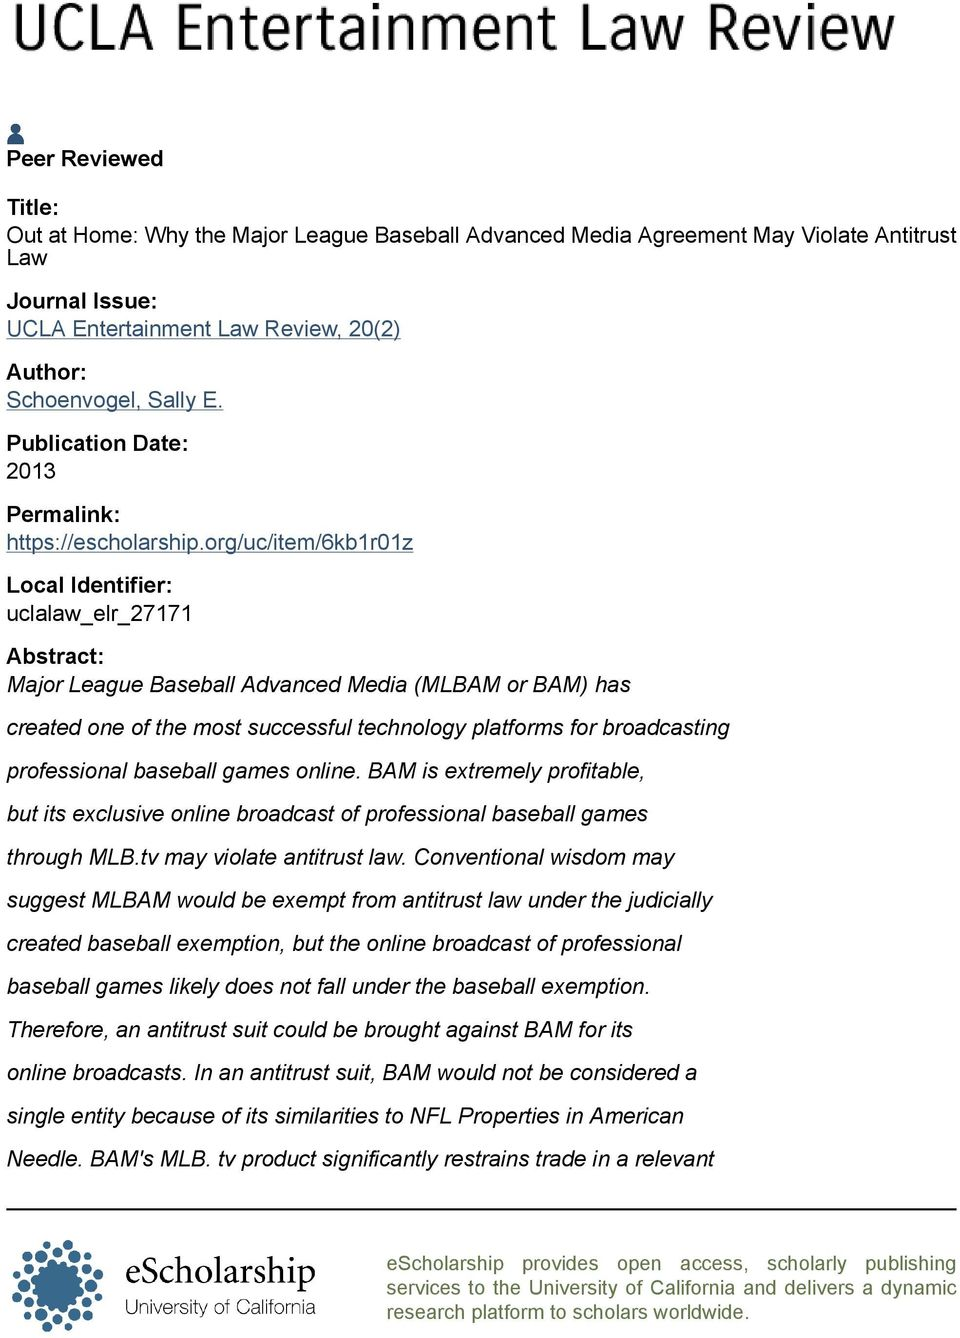 org/uc/item/6kb1r01z Local Identifier: uclalaw_elr_27171 Abstract: Major League Baseball Advanced Media (MLBAM or BAM) has created one of the most successful technology platforms for broadcasting